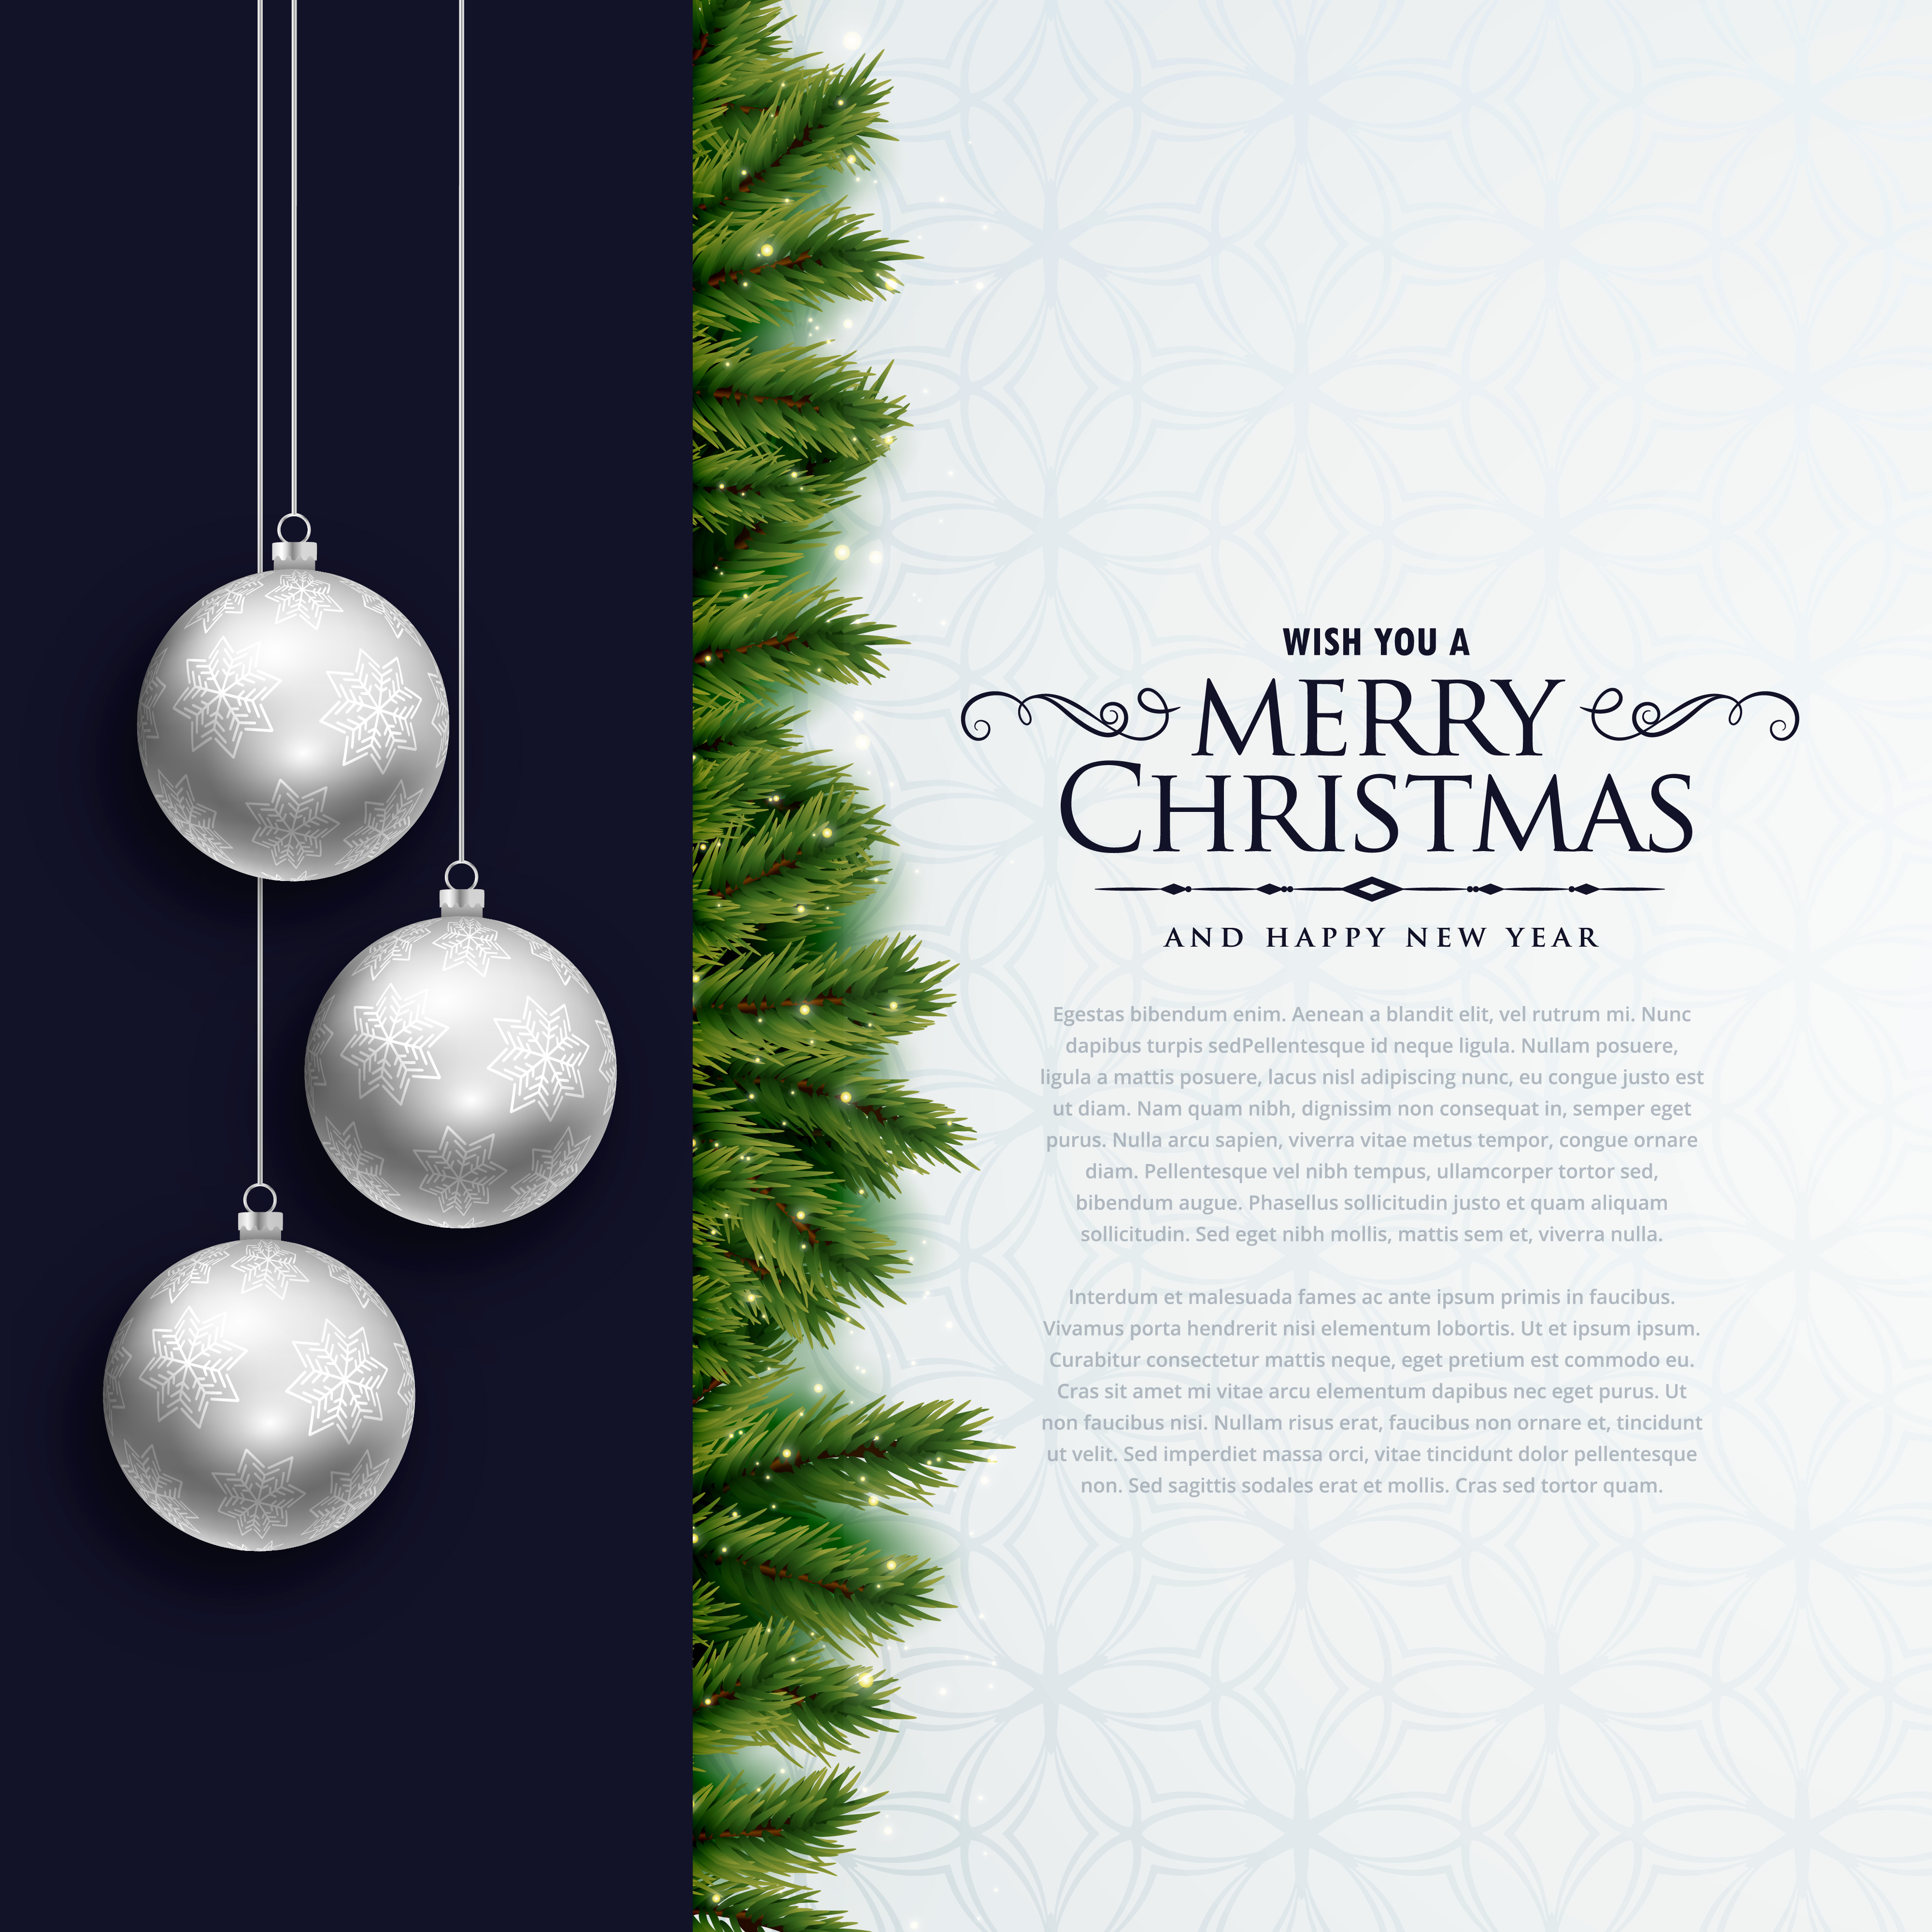 merry christmas elegant card design with hanging balls - Download ...